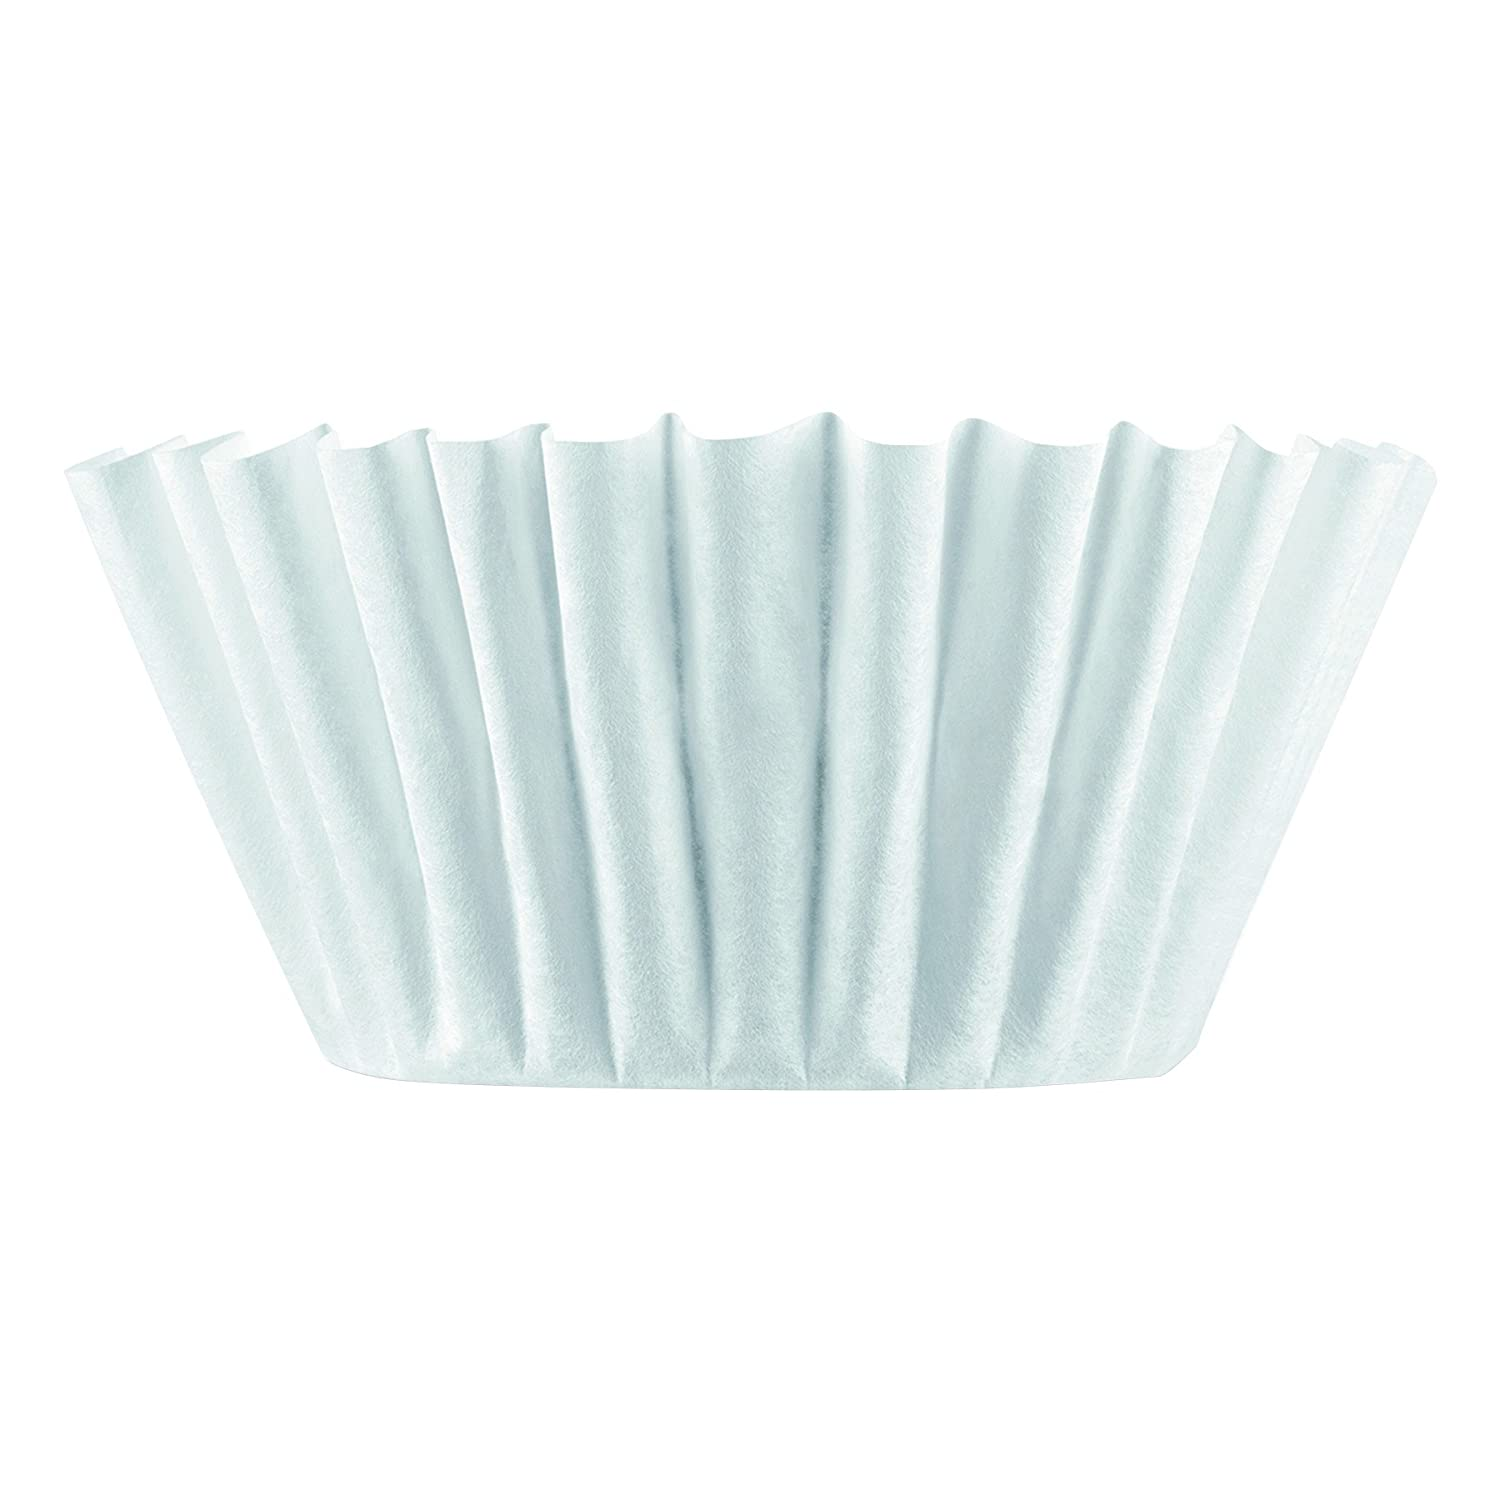 BUNN BCF100BCT Coffee Filters, 8/10-Cup Size, 100 per Pack (Case of 12 Packs)